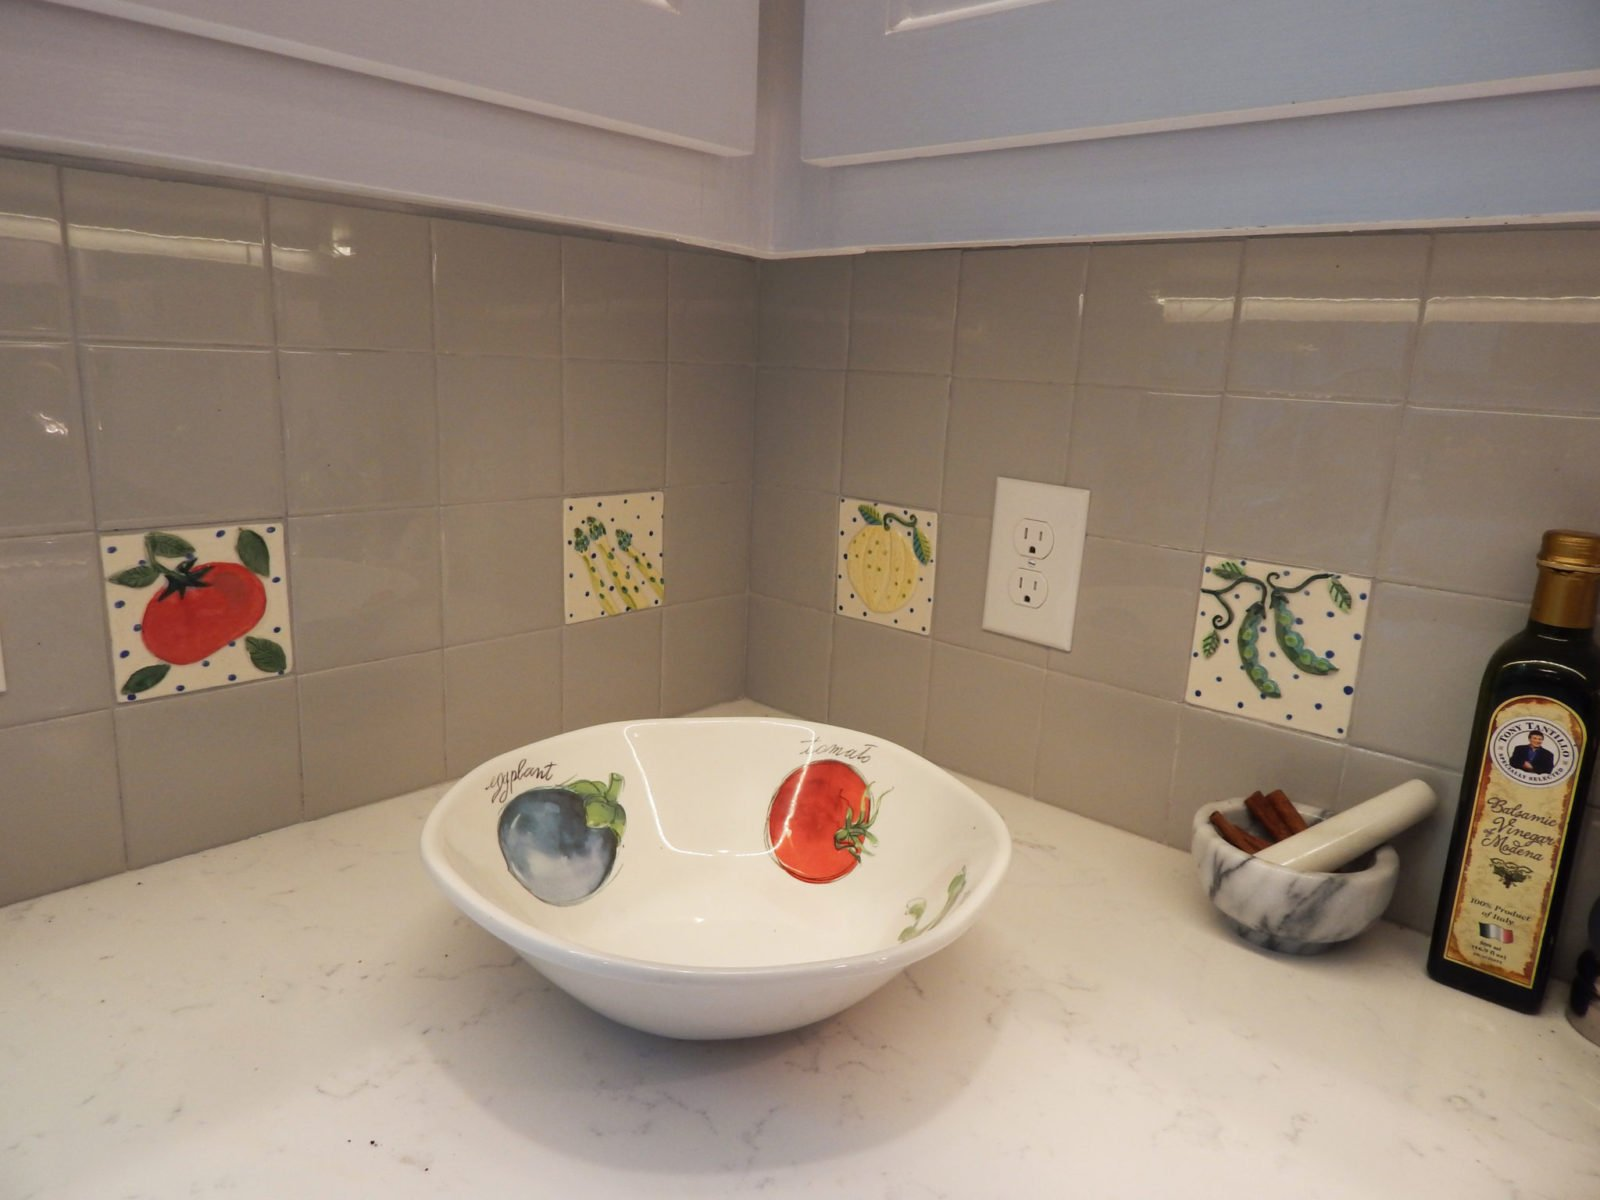 kitchen garden tiles in corner with a ceramic bowl.